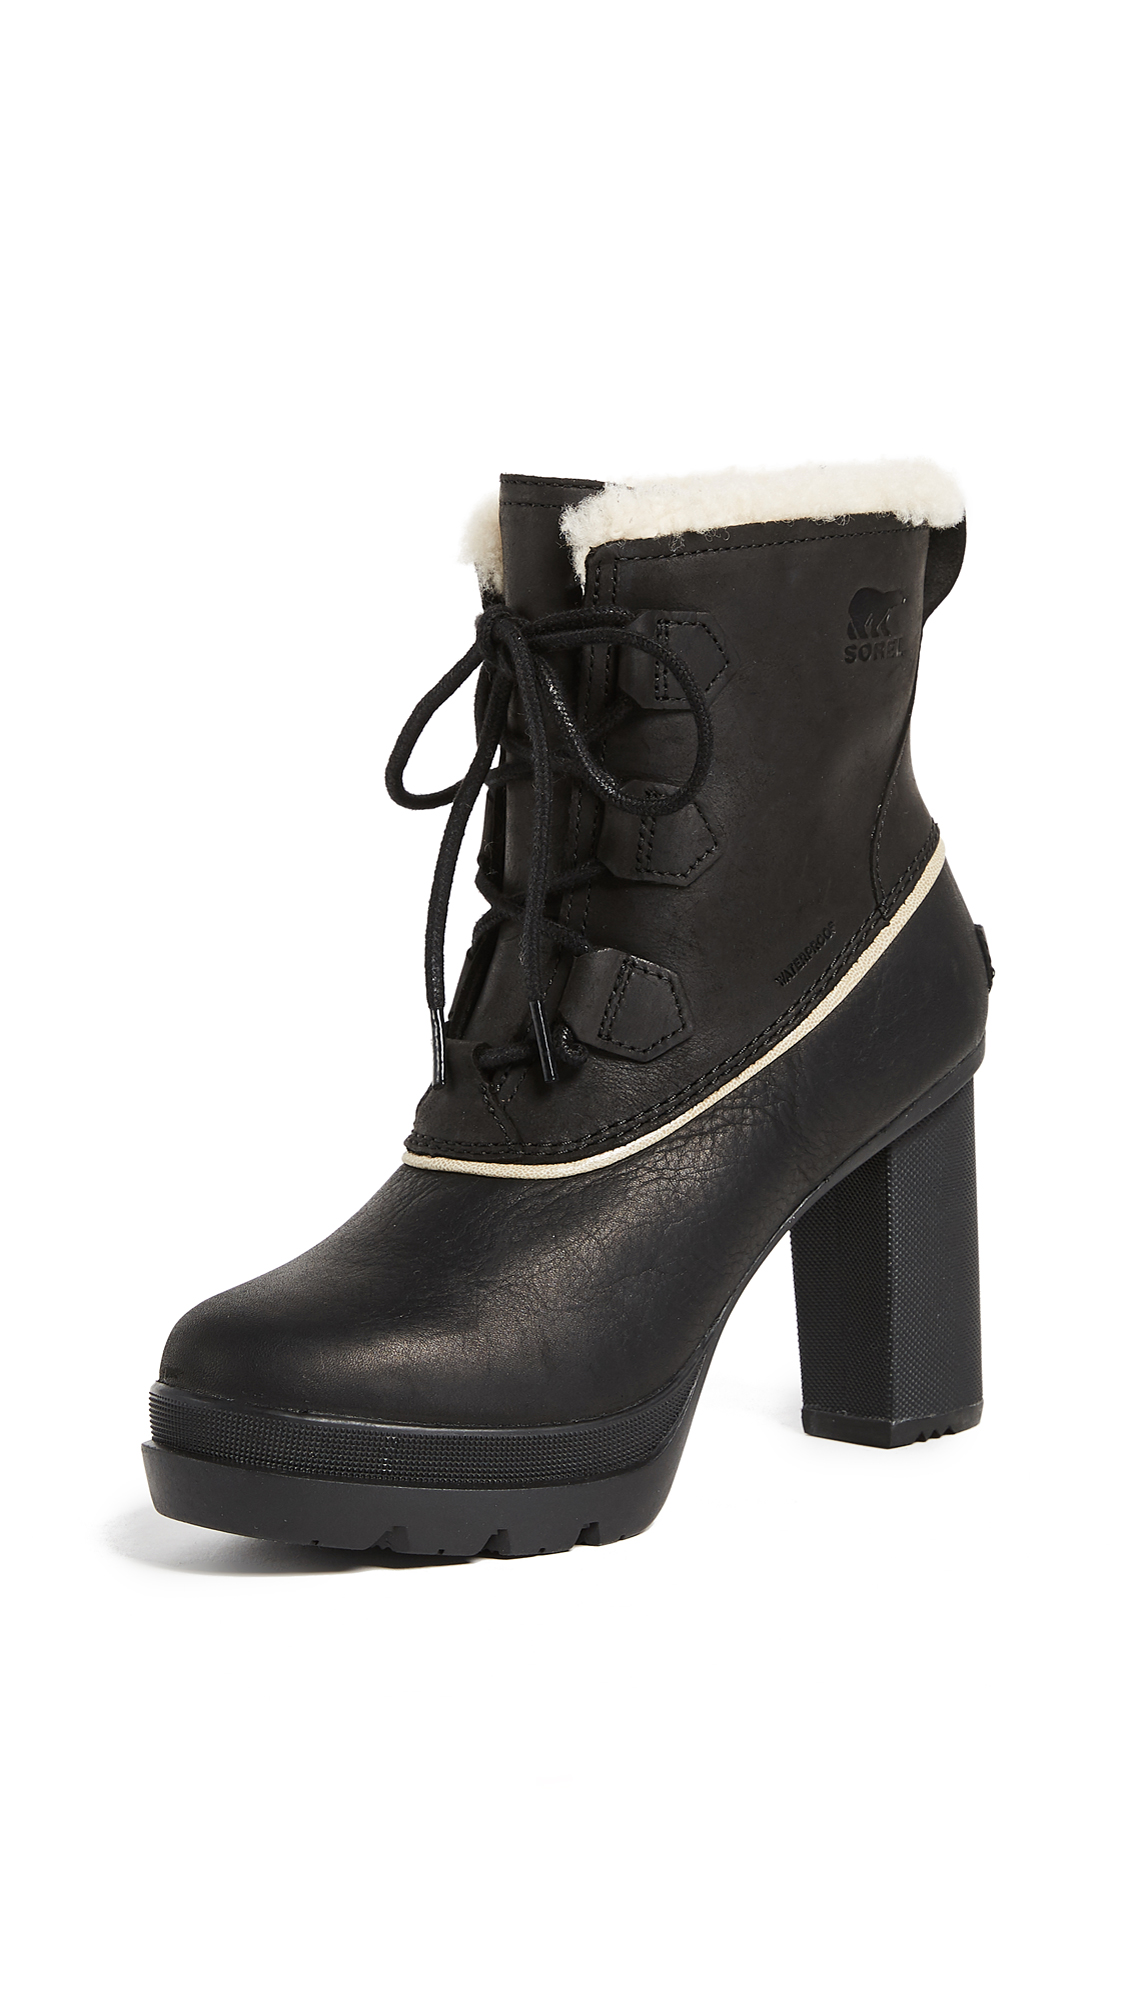 Sorel Dacie Lace Booties - Black